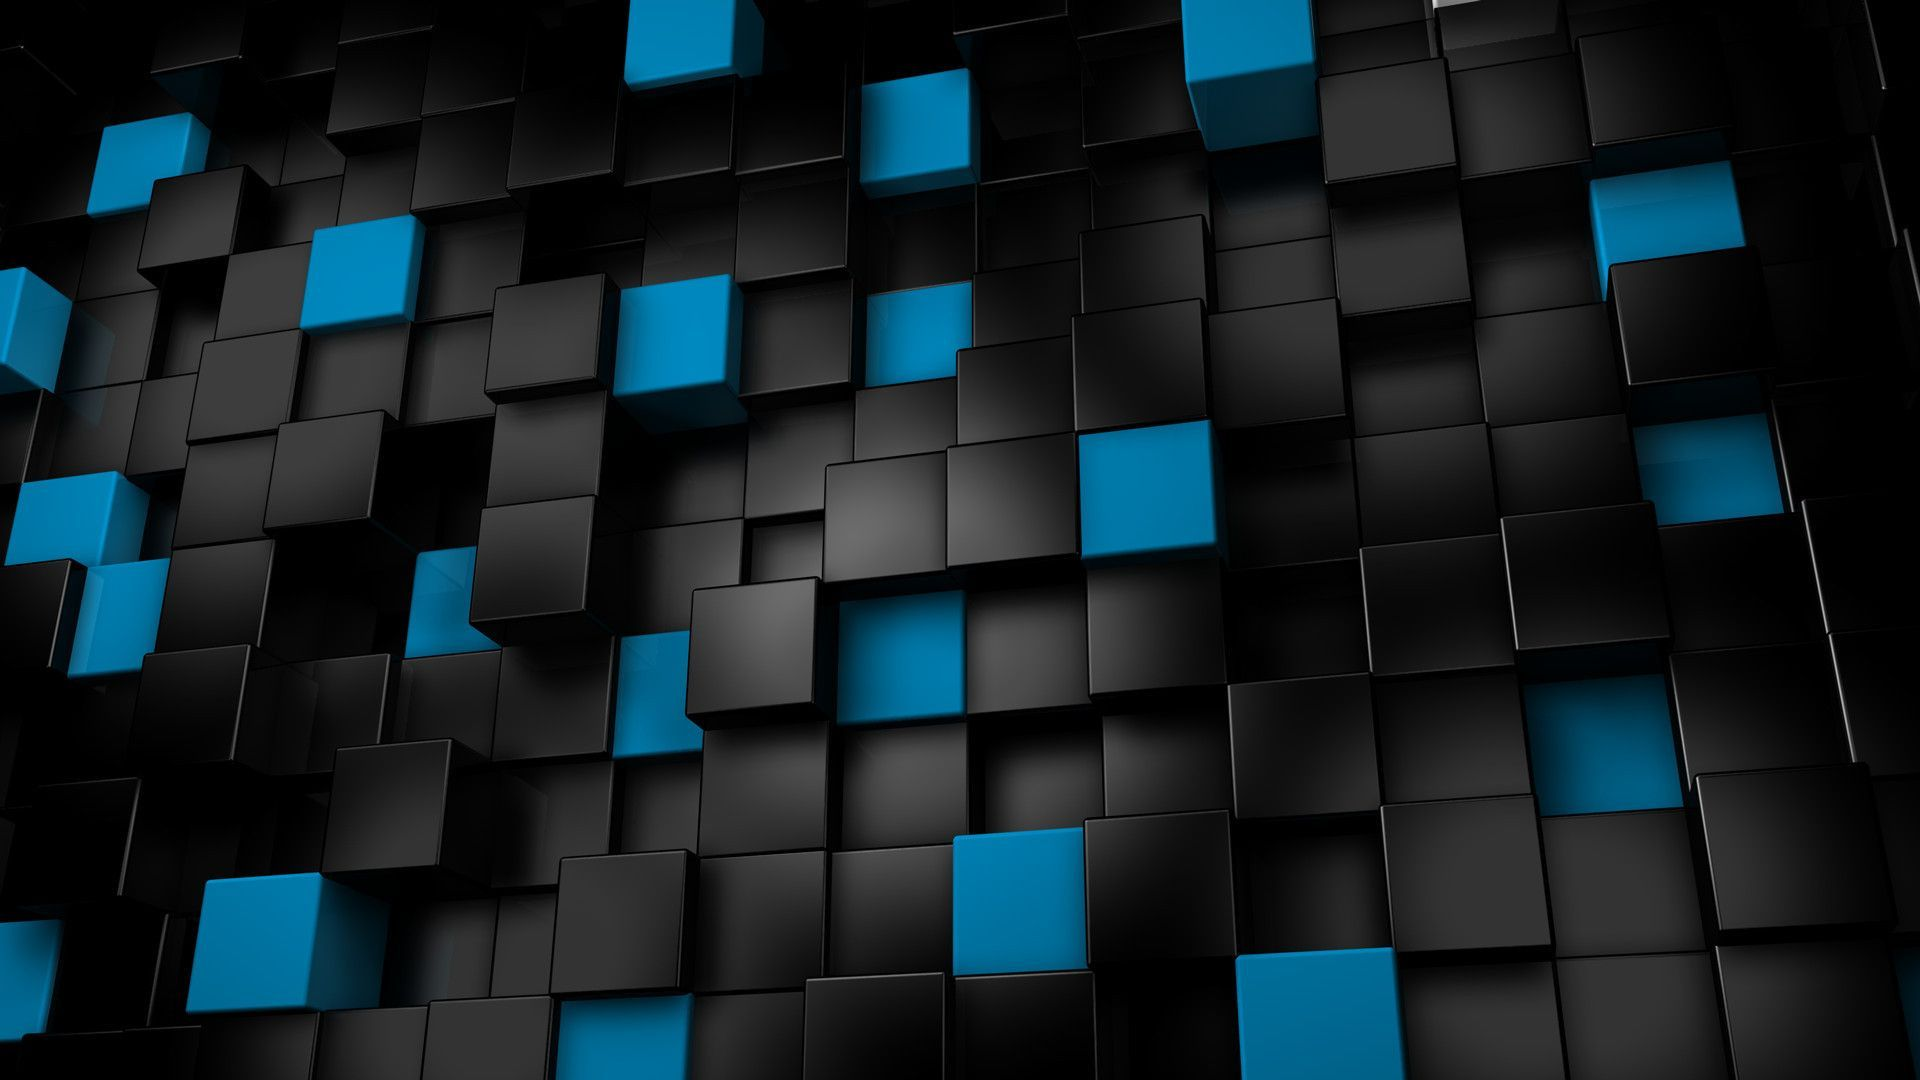 3d Abstract Hd Wallpapers Black And Blue Wallpaper Technology Wallpaper Abstract Wallpaper